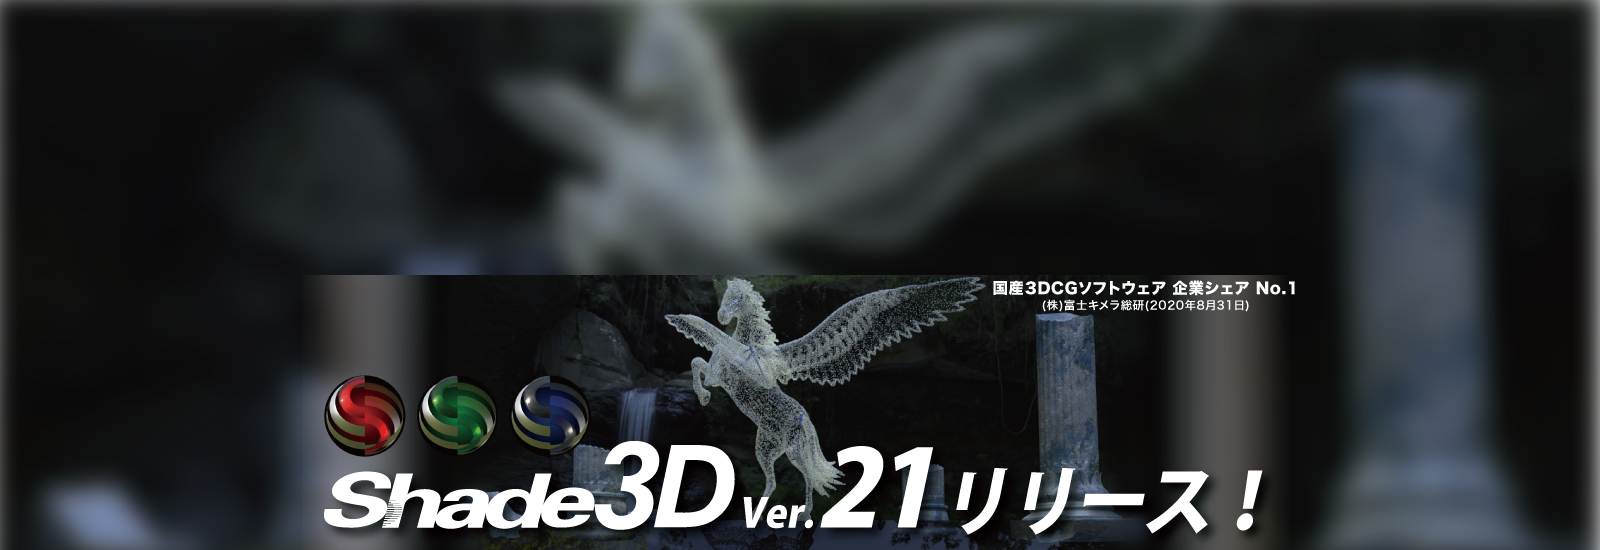 Top banner Shade3D Ver.21